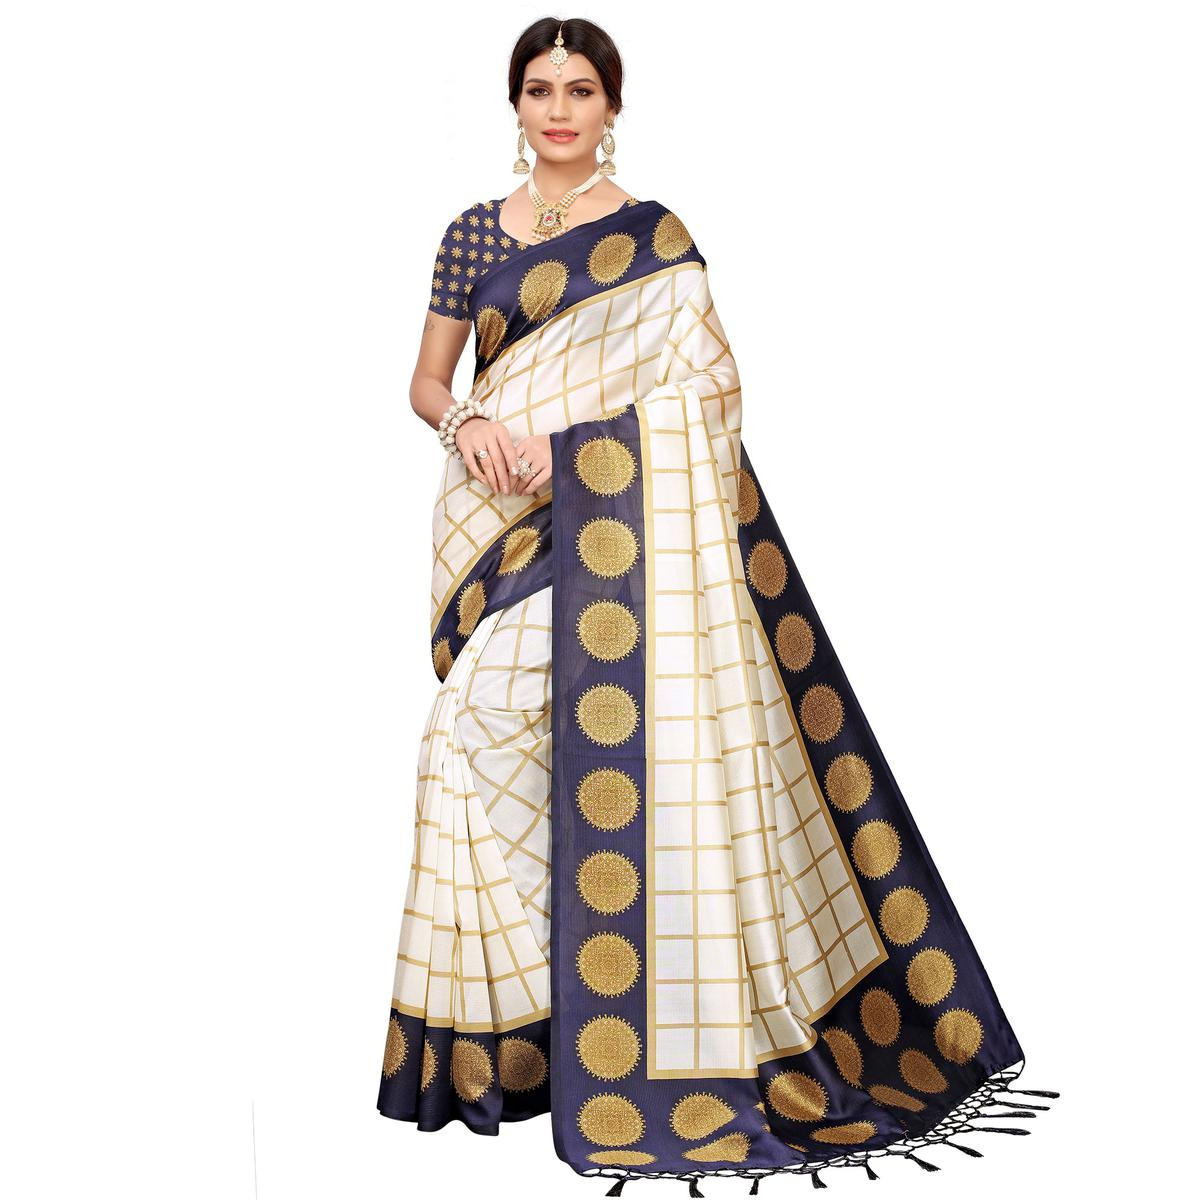 Gorgeous Off White-Navy Blue Colored Festive Wear Mysore Silk Saree